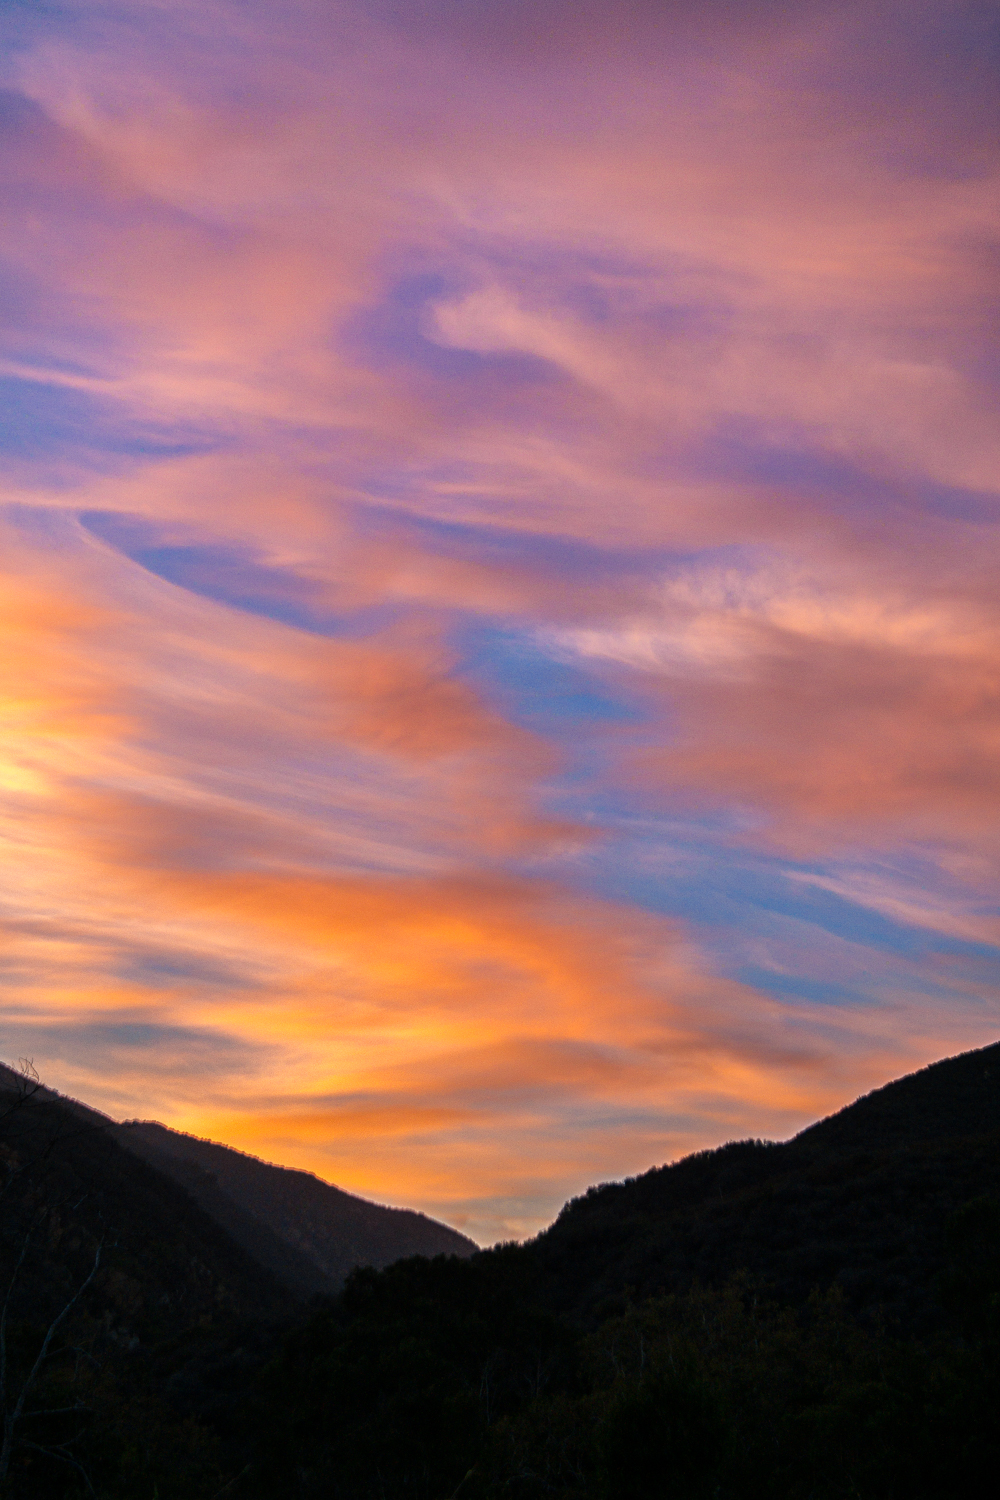 Wasim Muklashy Photography__Samsung NX30_Topanga Beach_Monday Motivational_July 21